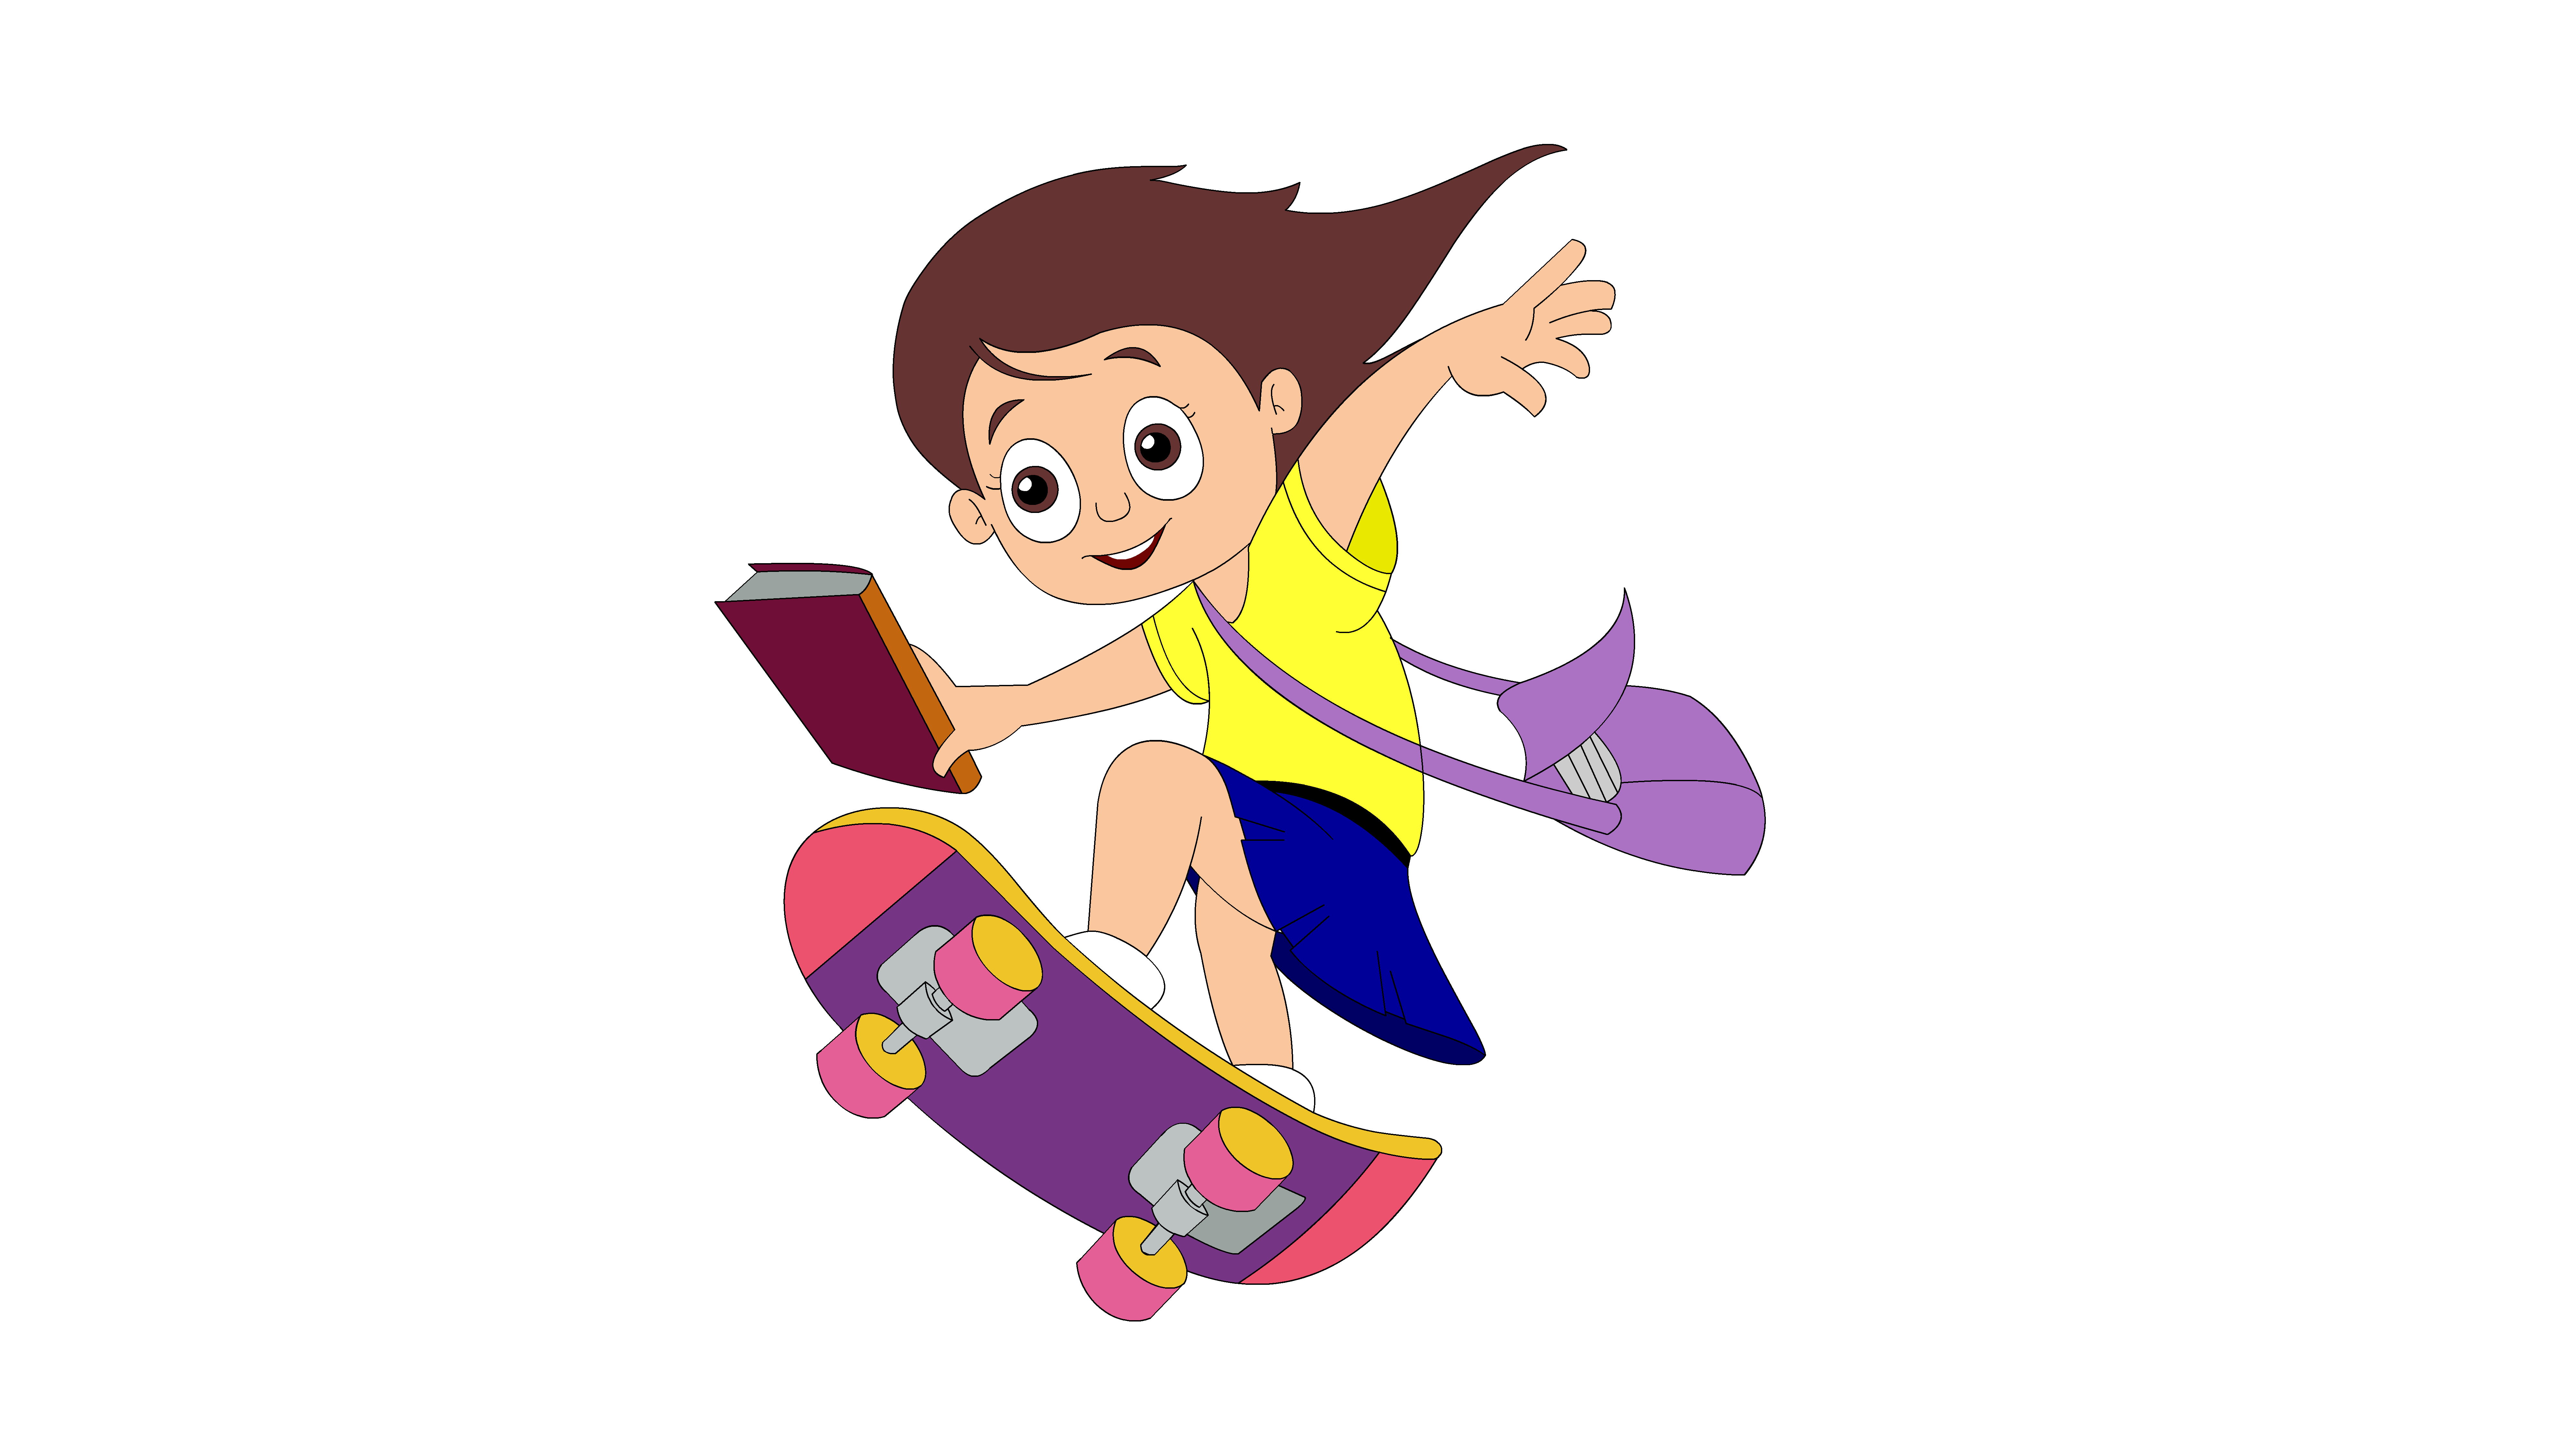 Weight clipart recreation. Play group